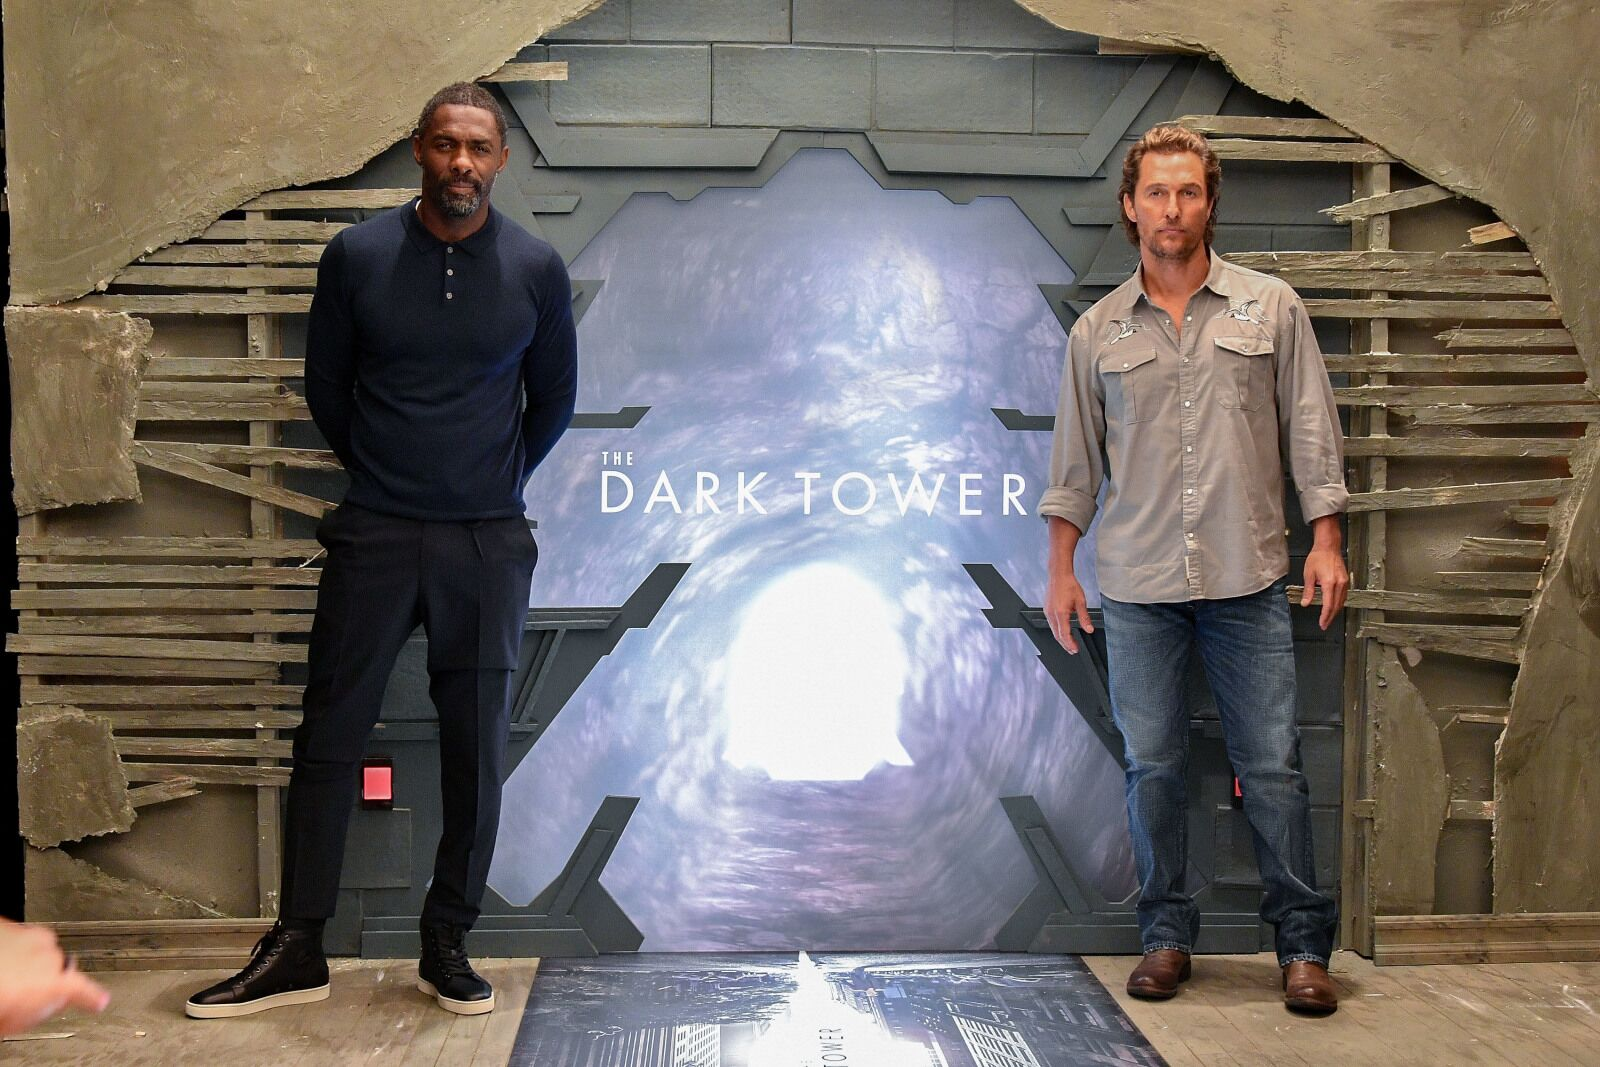 What should we expect from The Dark Tower series?